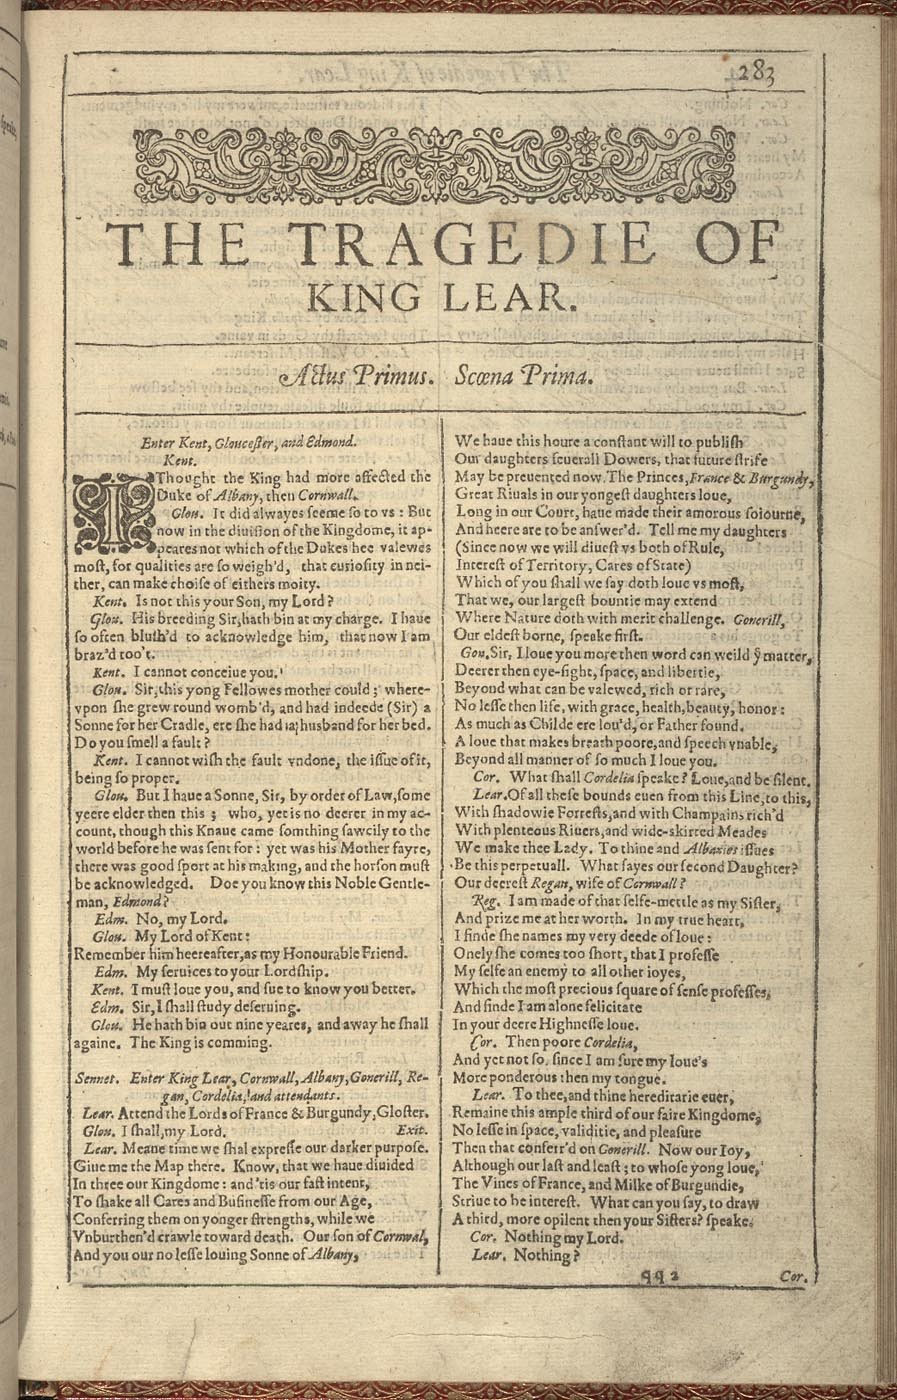 falstaff and king lear essay The tempest in act iii influences the character king lear significantly the storm is an echo of lear's inner turmoil and his growing insanity: the awesome power of the storm is a physical.